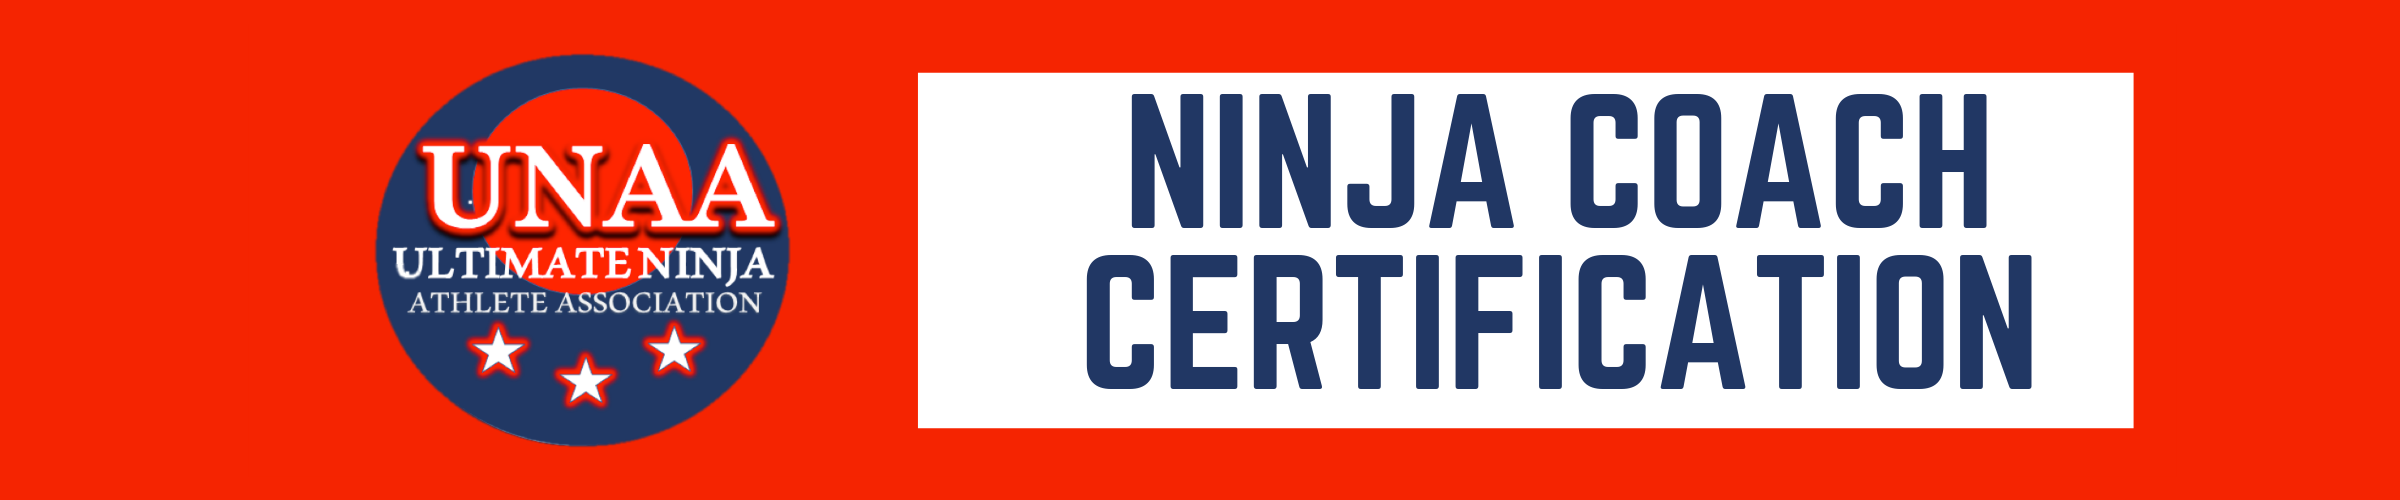 Cover ninja coach certification   new logo